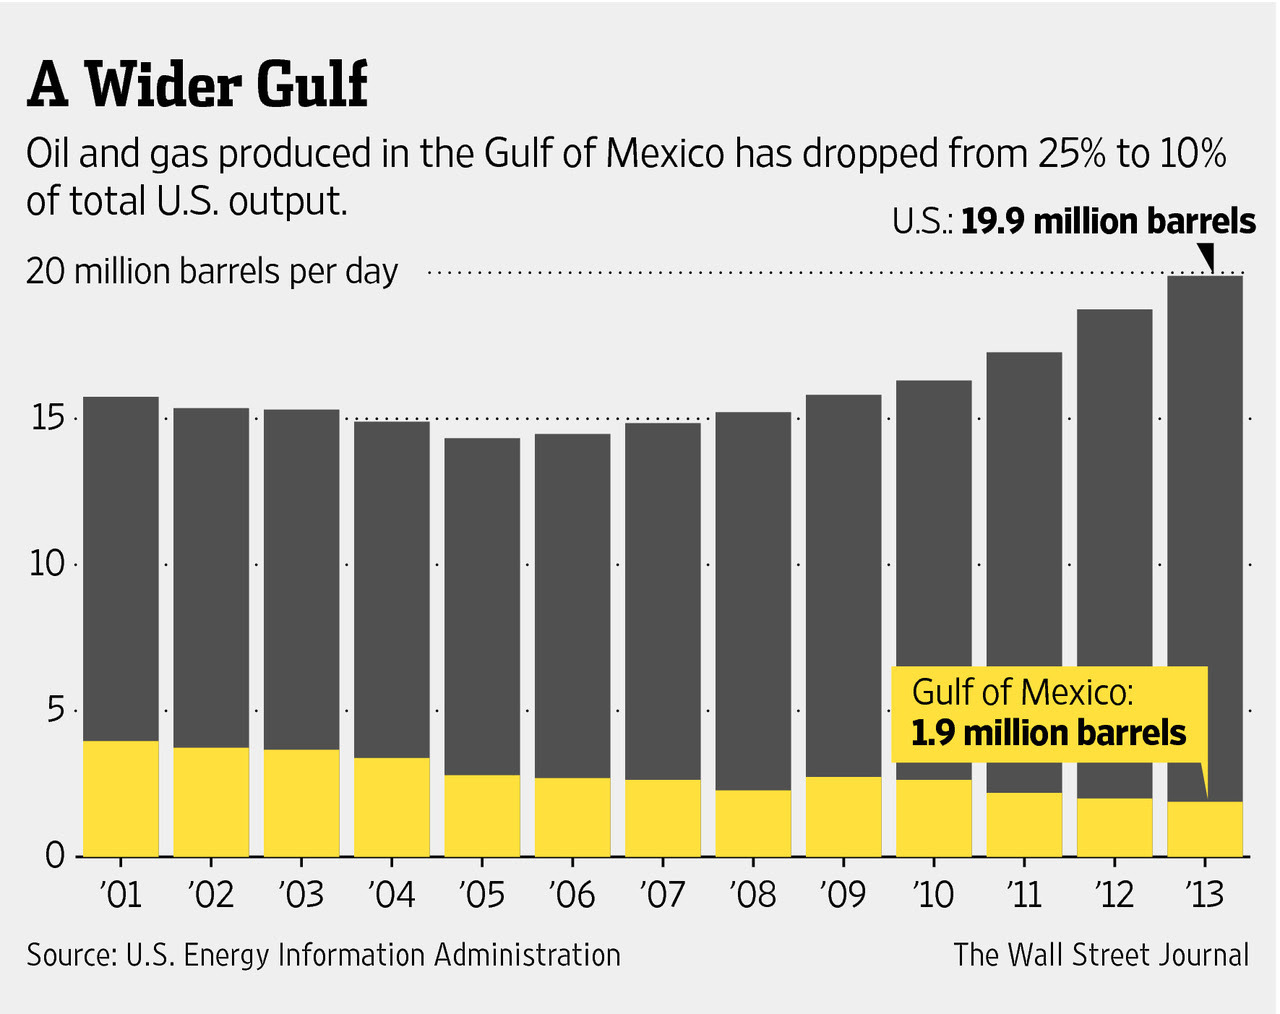 Gulf of Mexico Oil and Gas Production, 2001 -2013